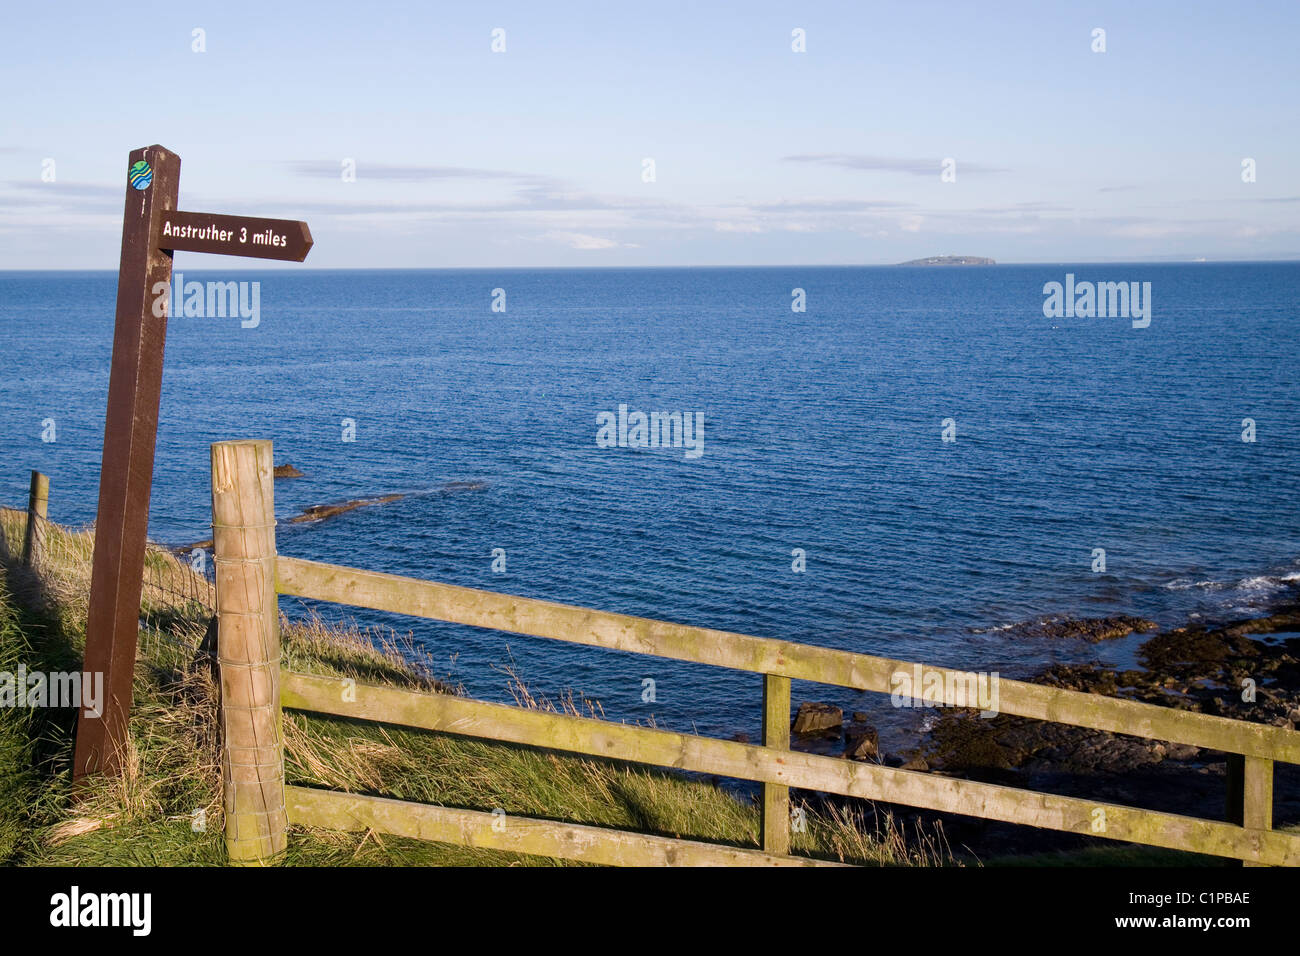 Scotland, Fife, Crail, signpost and fence overlooking sea - Stock Image